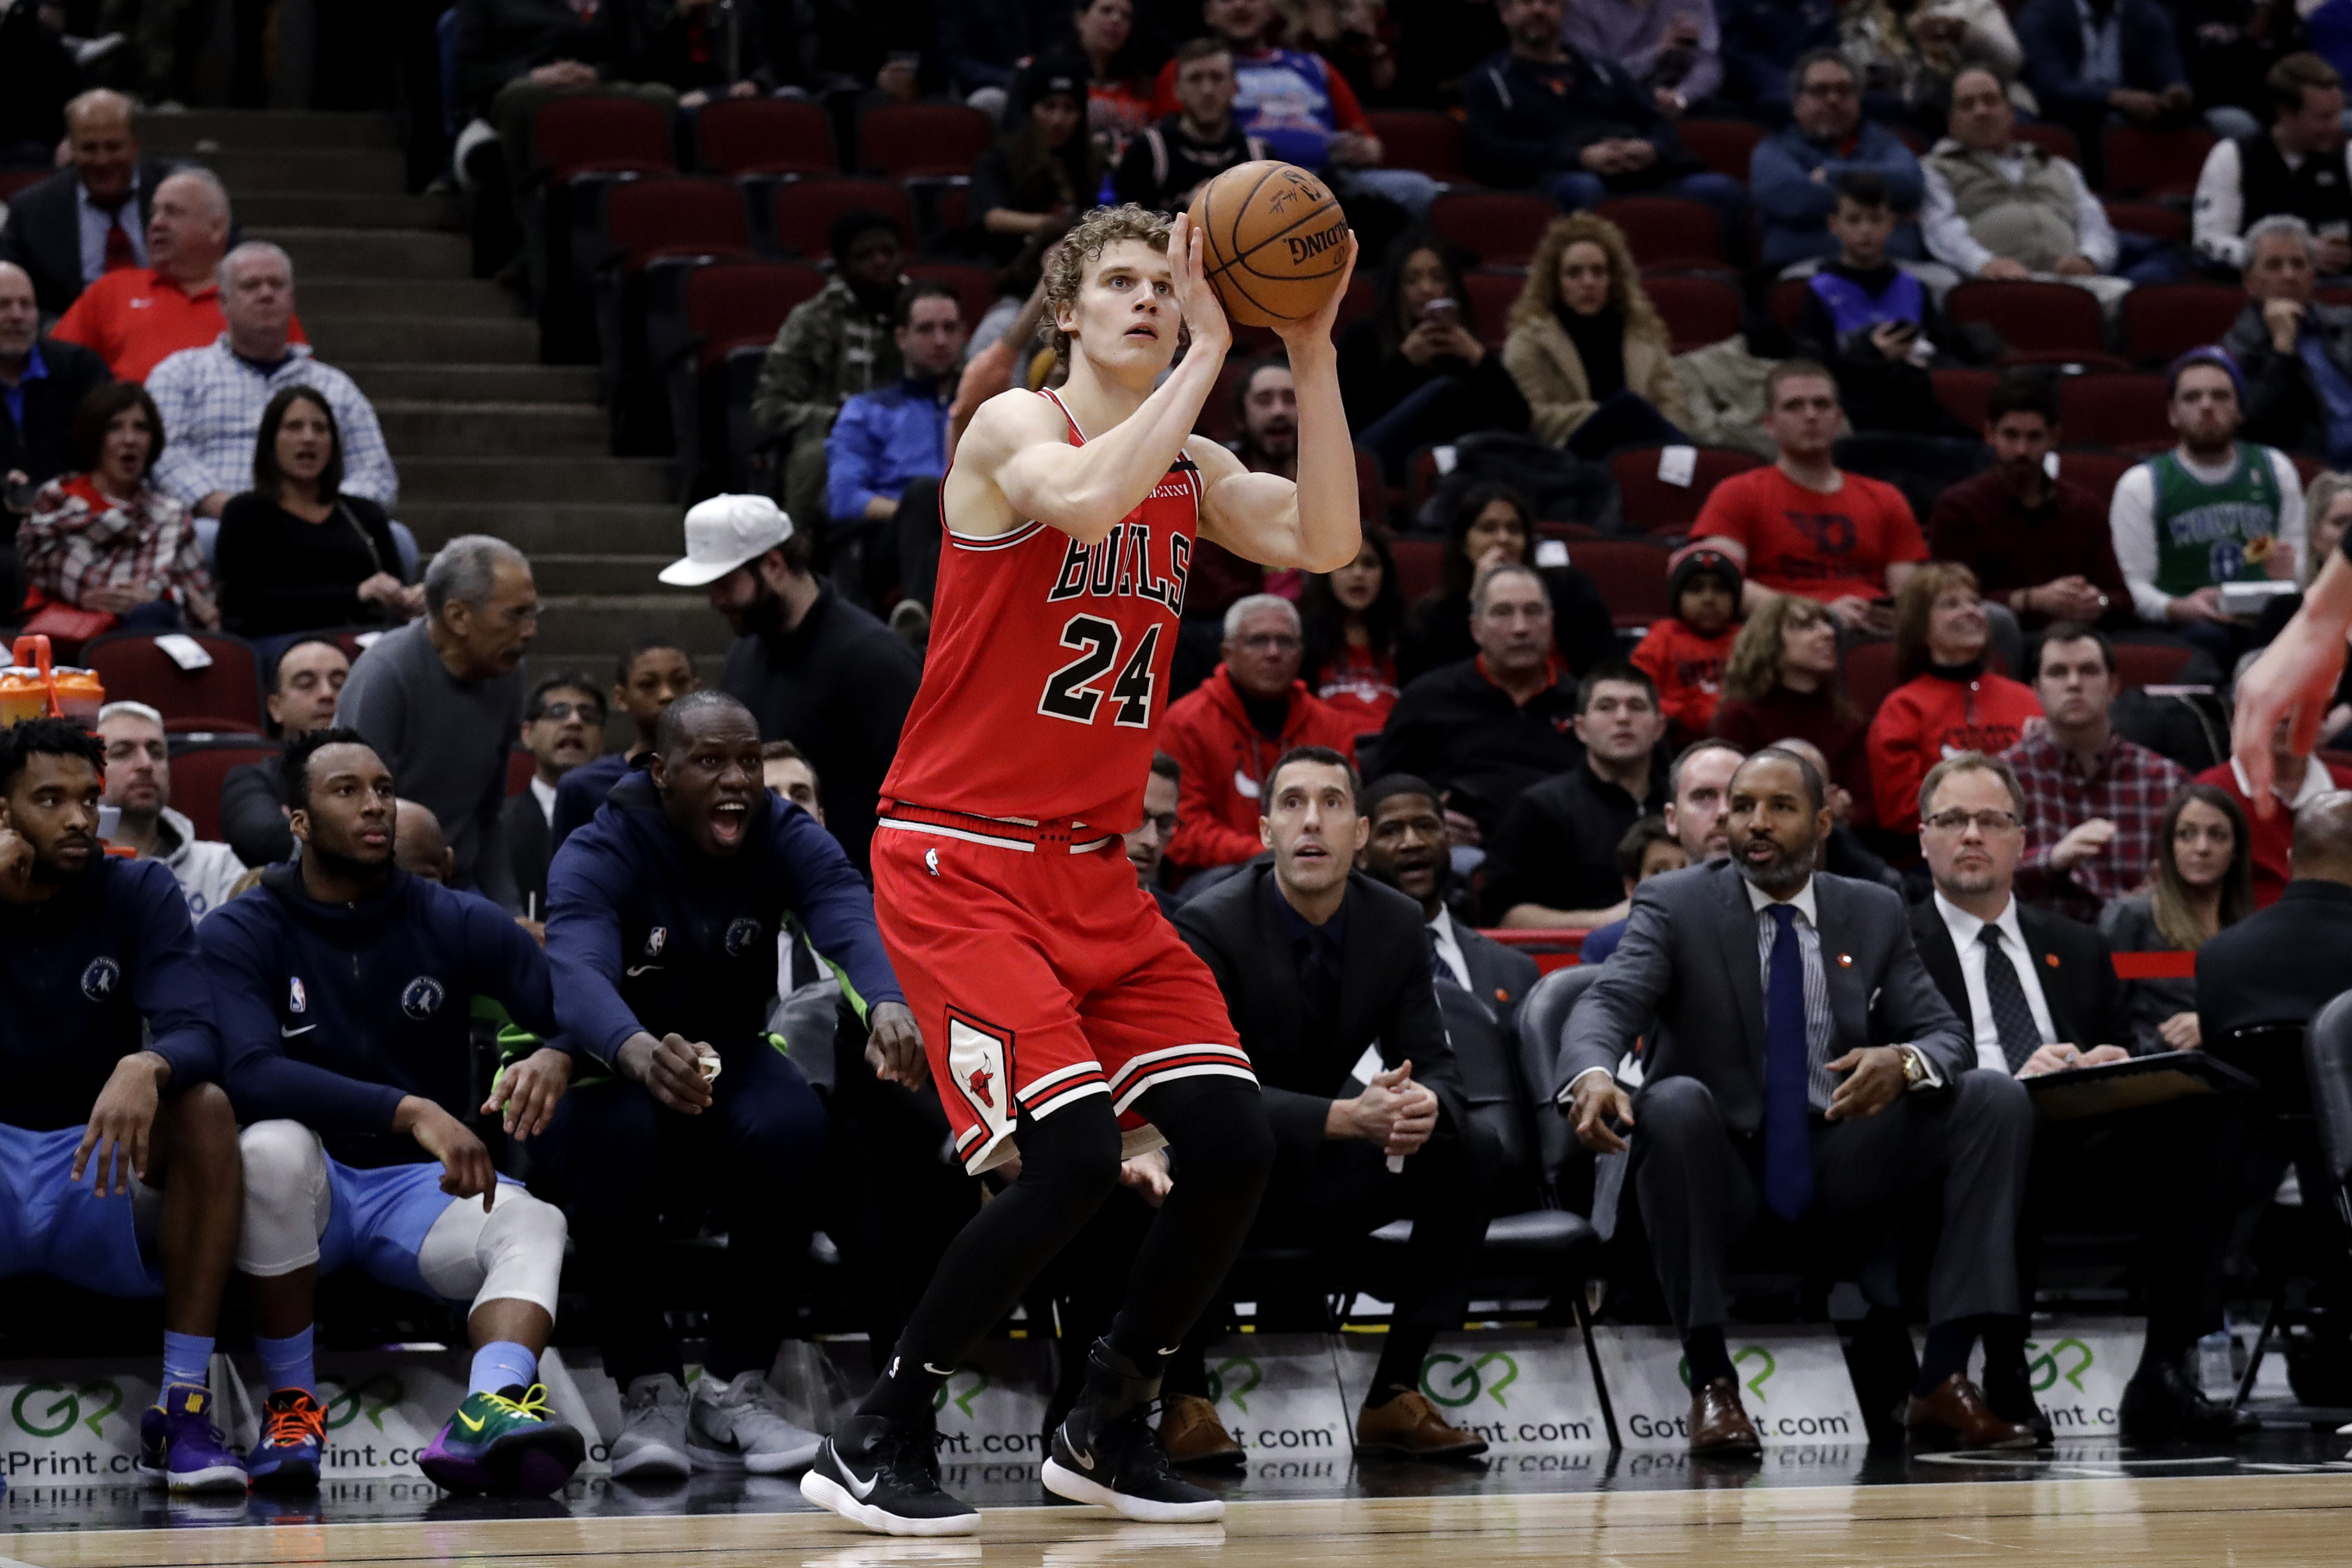 A hip injury will likely sideline Lauri Markkanen for 4-6 weeks.